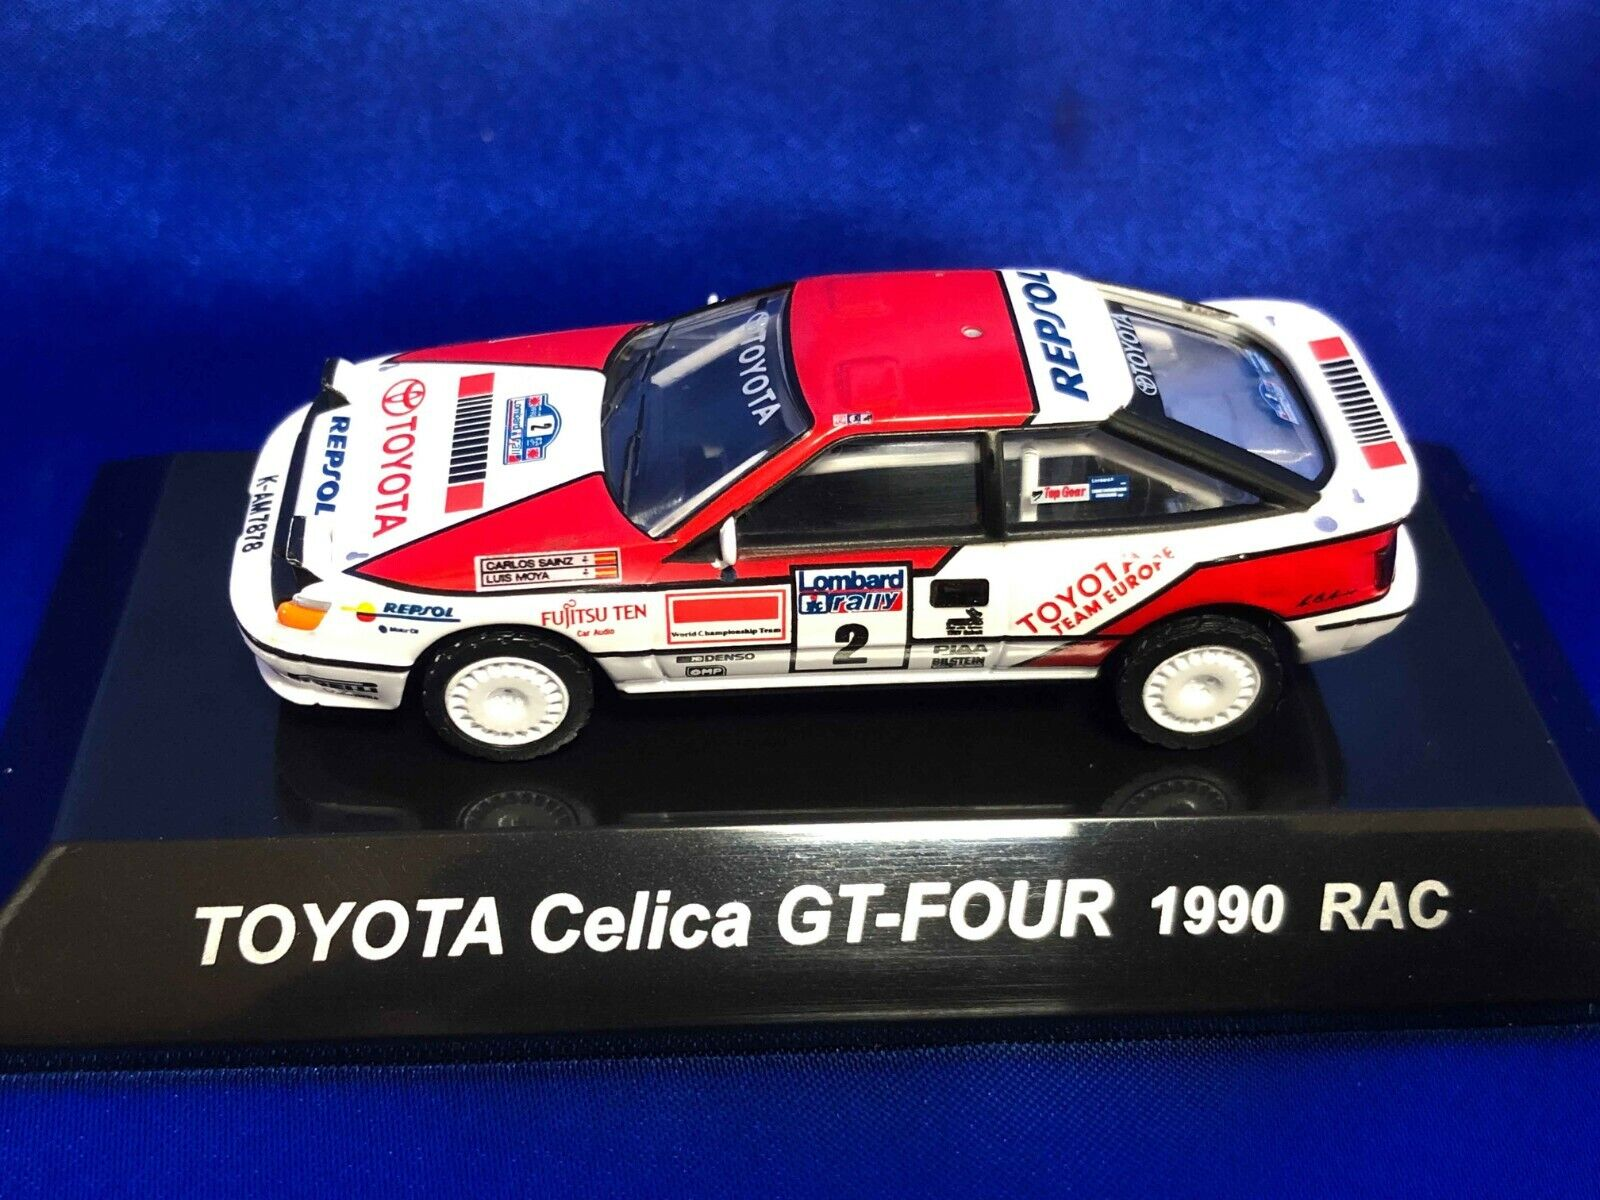 CM'S 40/40 TOYOTA Celica GT FOUR 40990 RAC Rally Car With blister case  Tracking